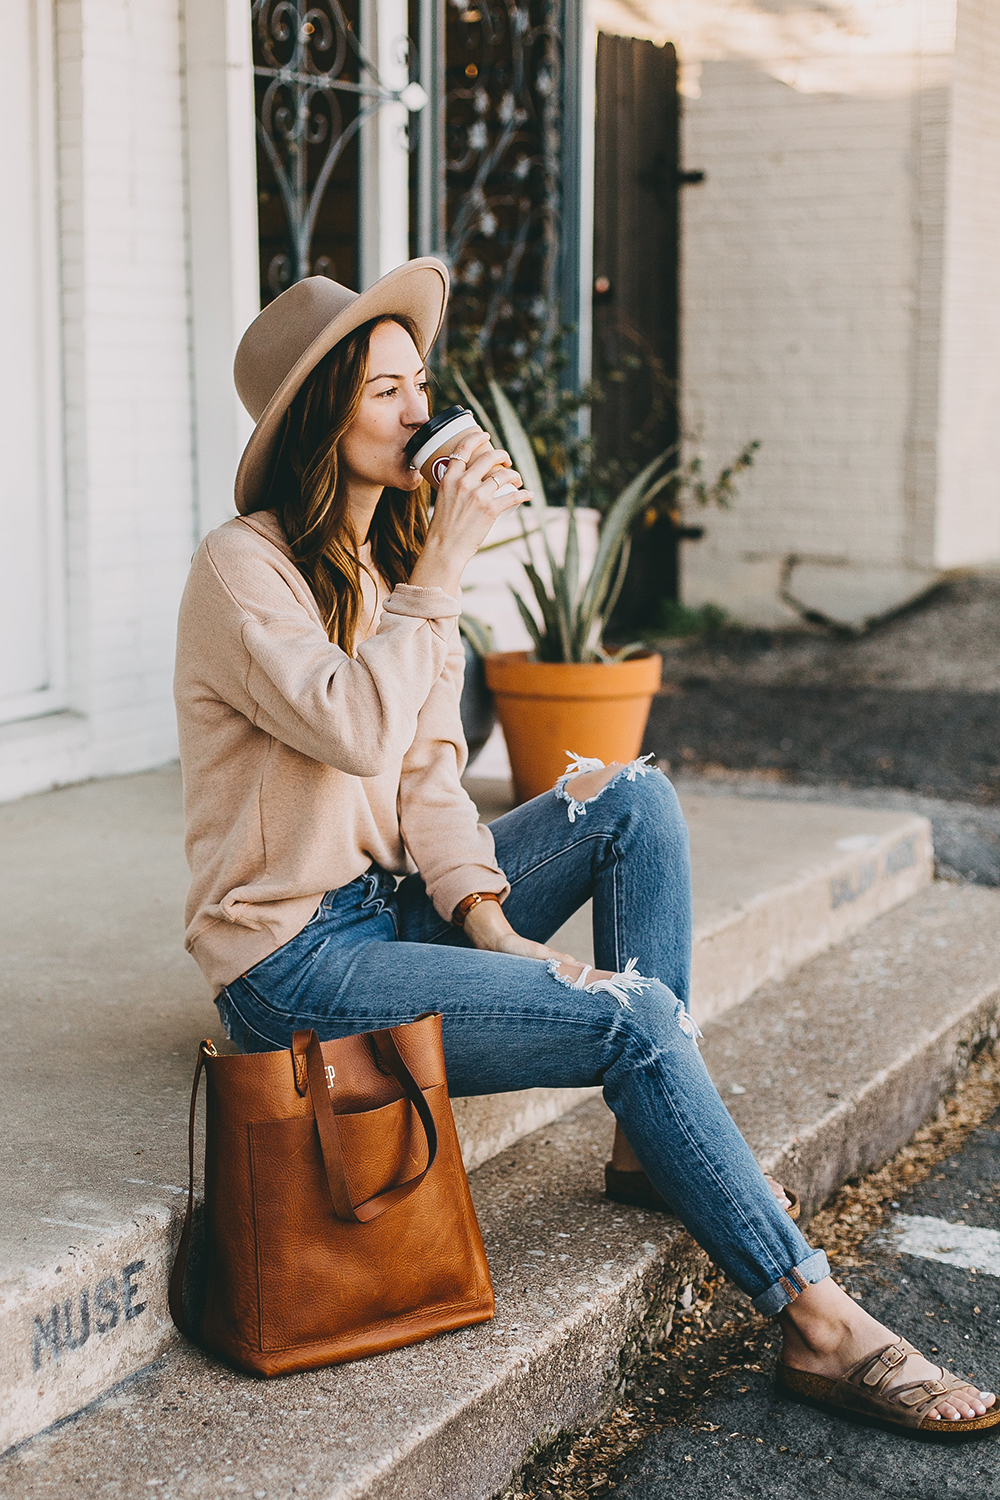 livvyland-blog-olivia-watson-austin-texas-fashion-blogger-madewell-peach-sweatshirt-medium-transport-tote-levis-501-jeans-8